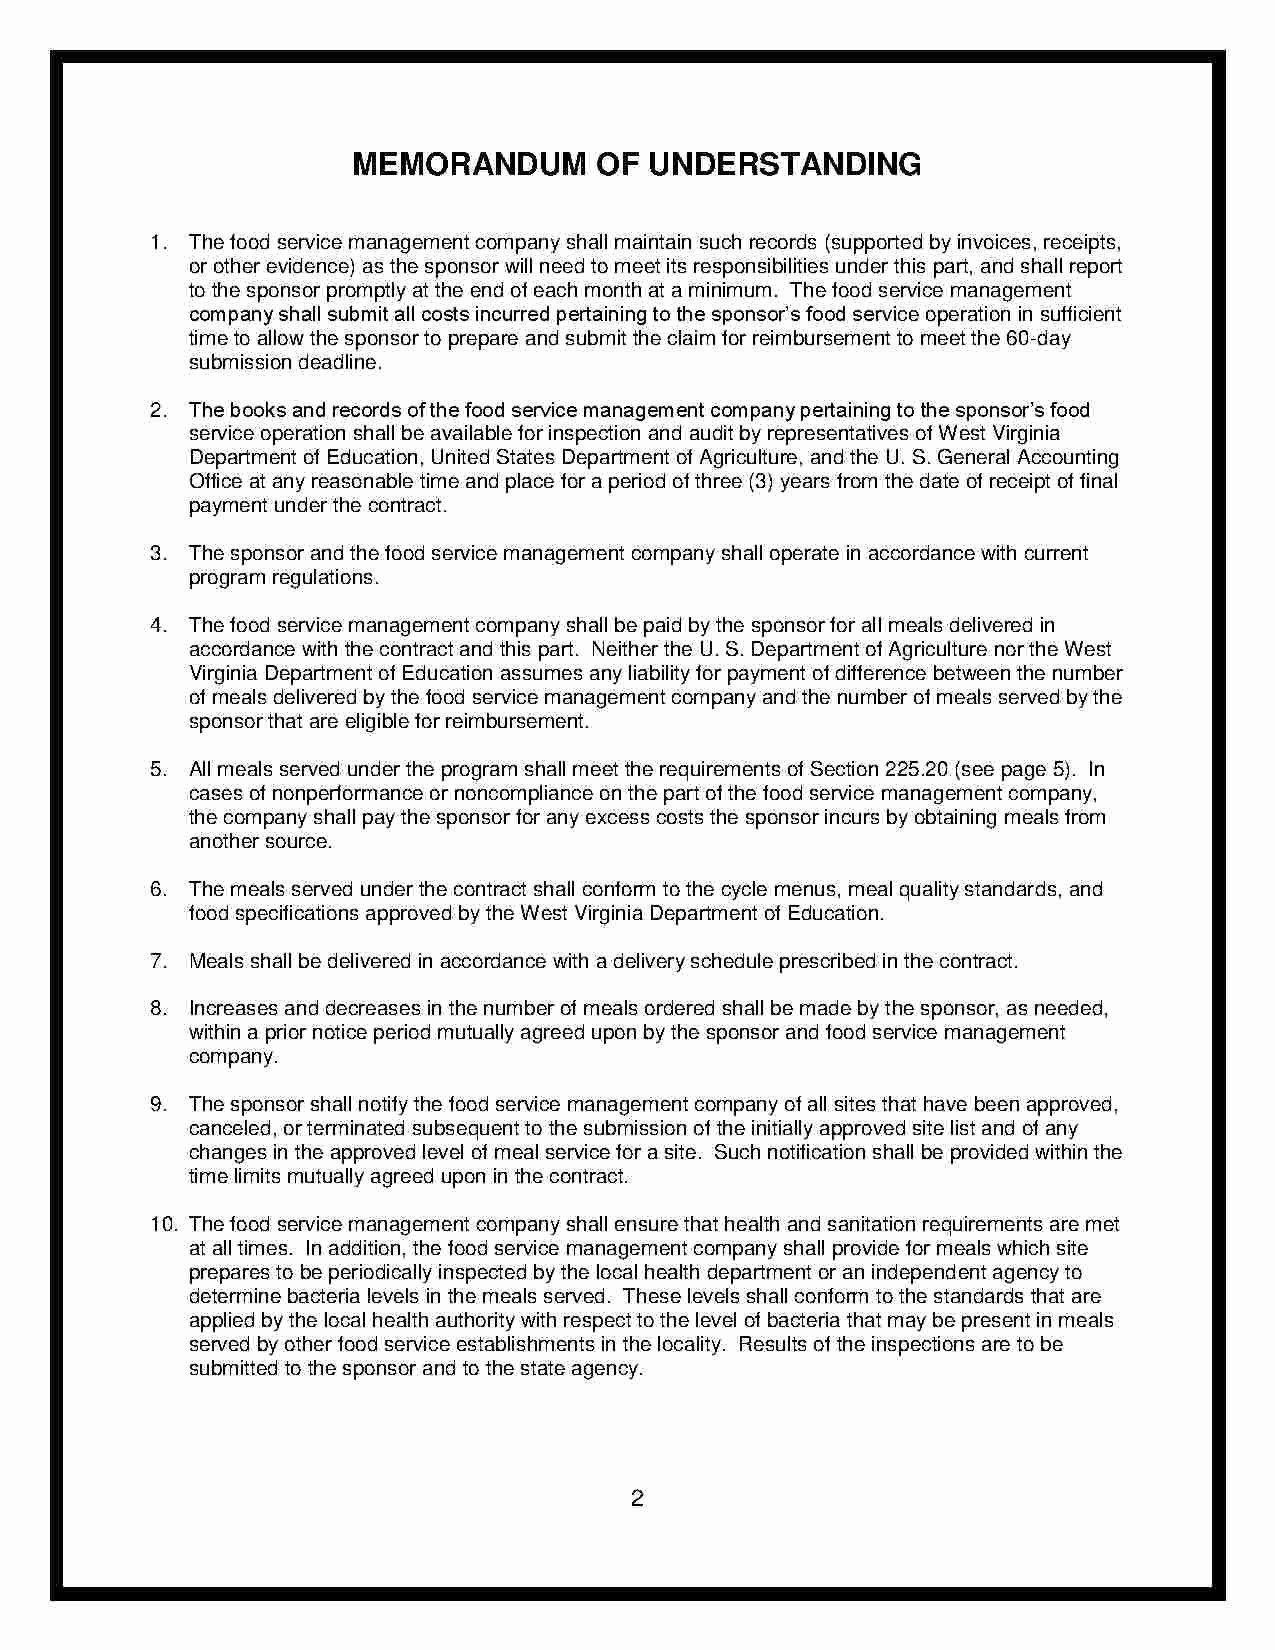 Food Service Contract Template Awesome Download Food Service Contract Style 10 Template for Free